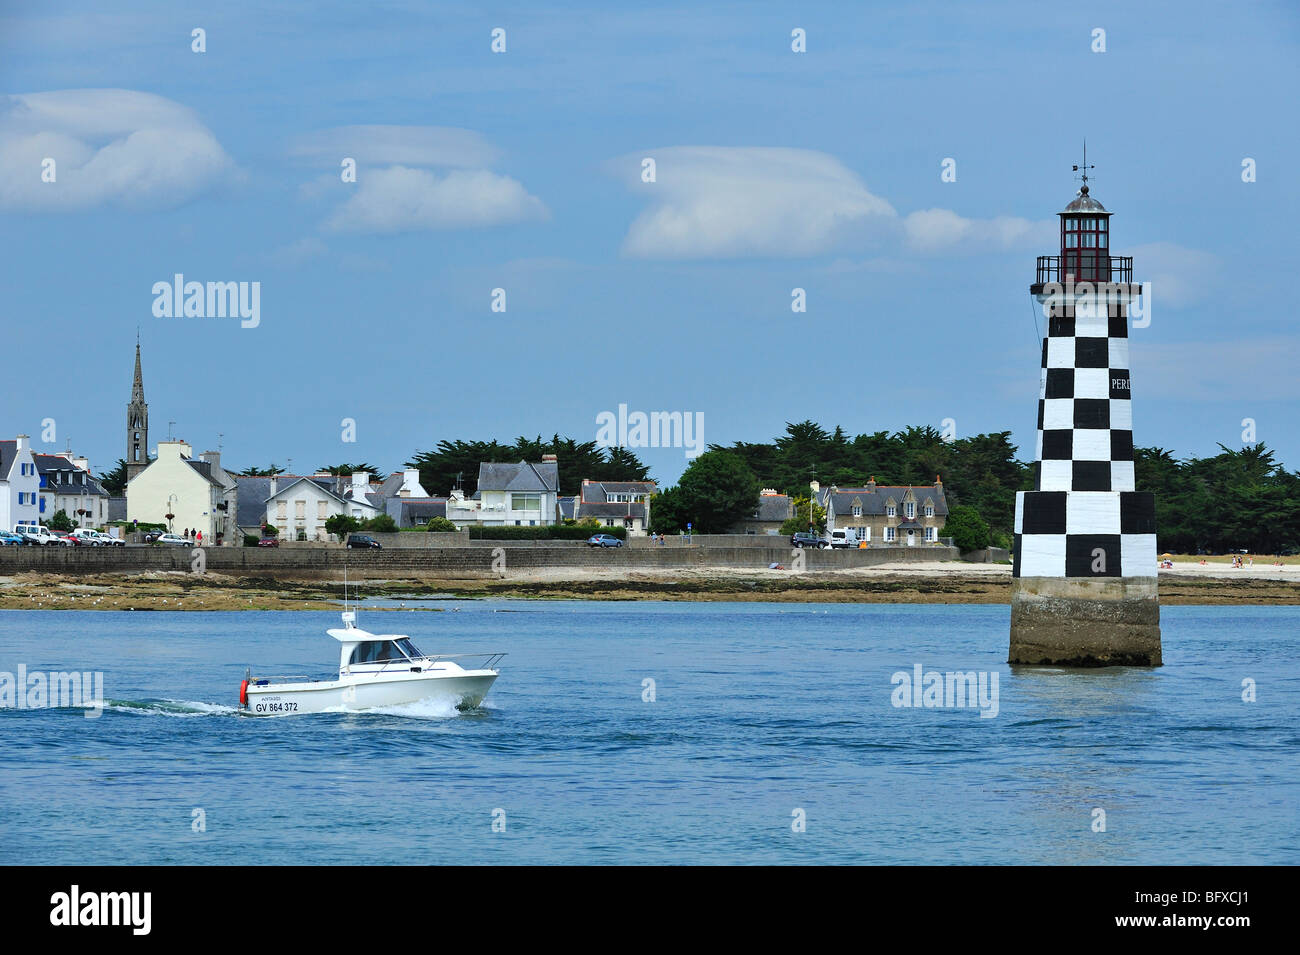 Motorboat and the lighthouse Perdrix at Loctudy, Finist re, Brittany, France - Stock Image